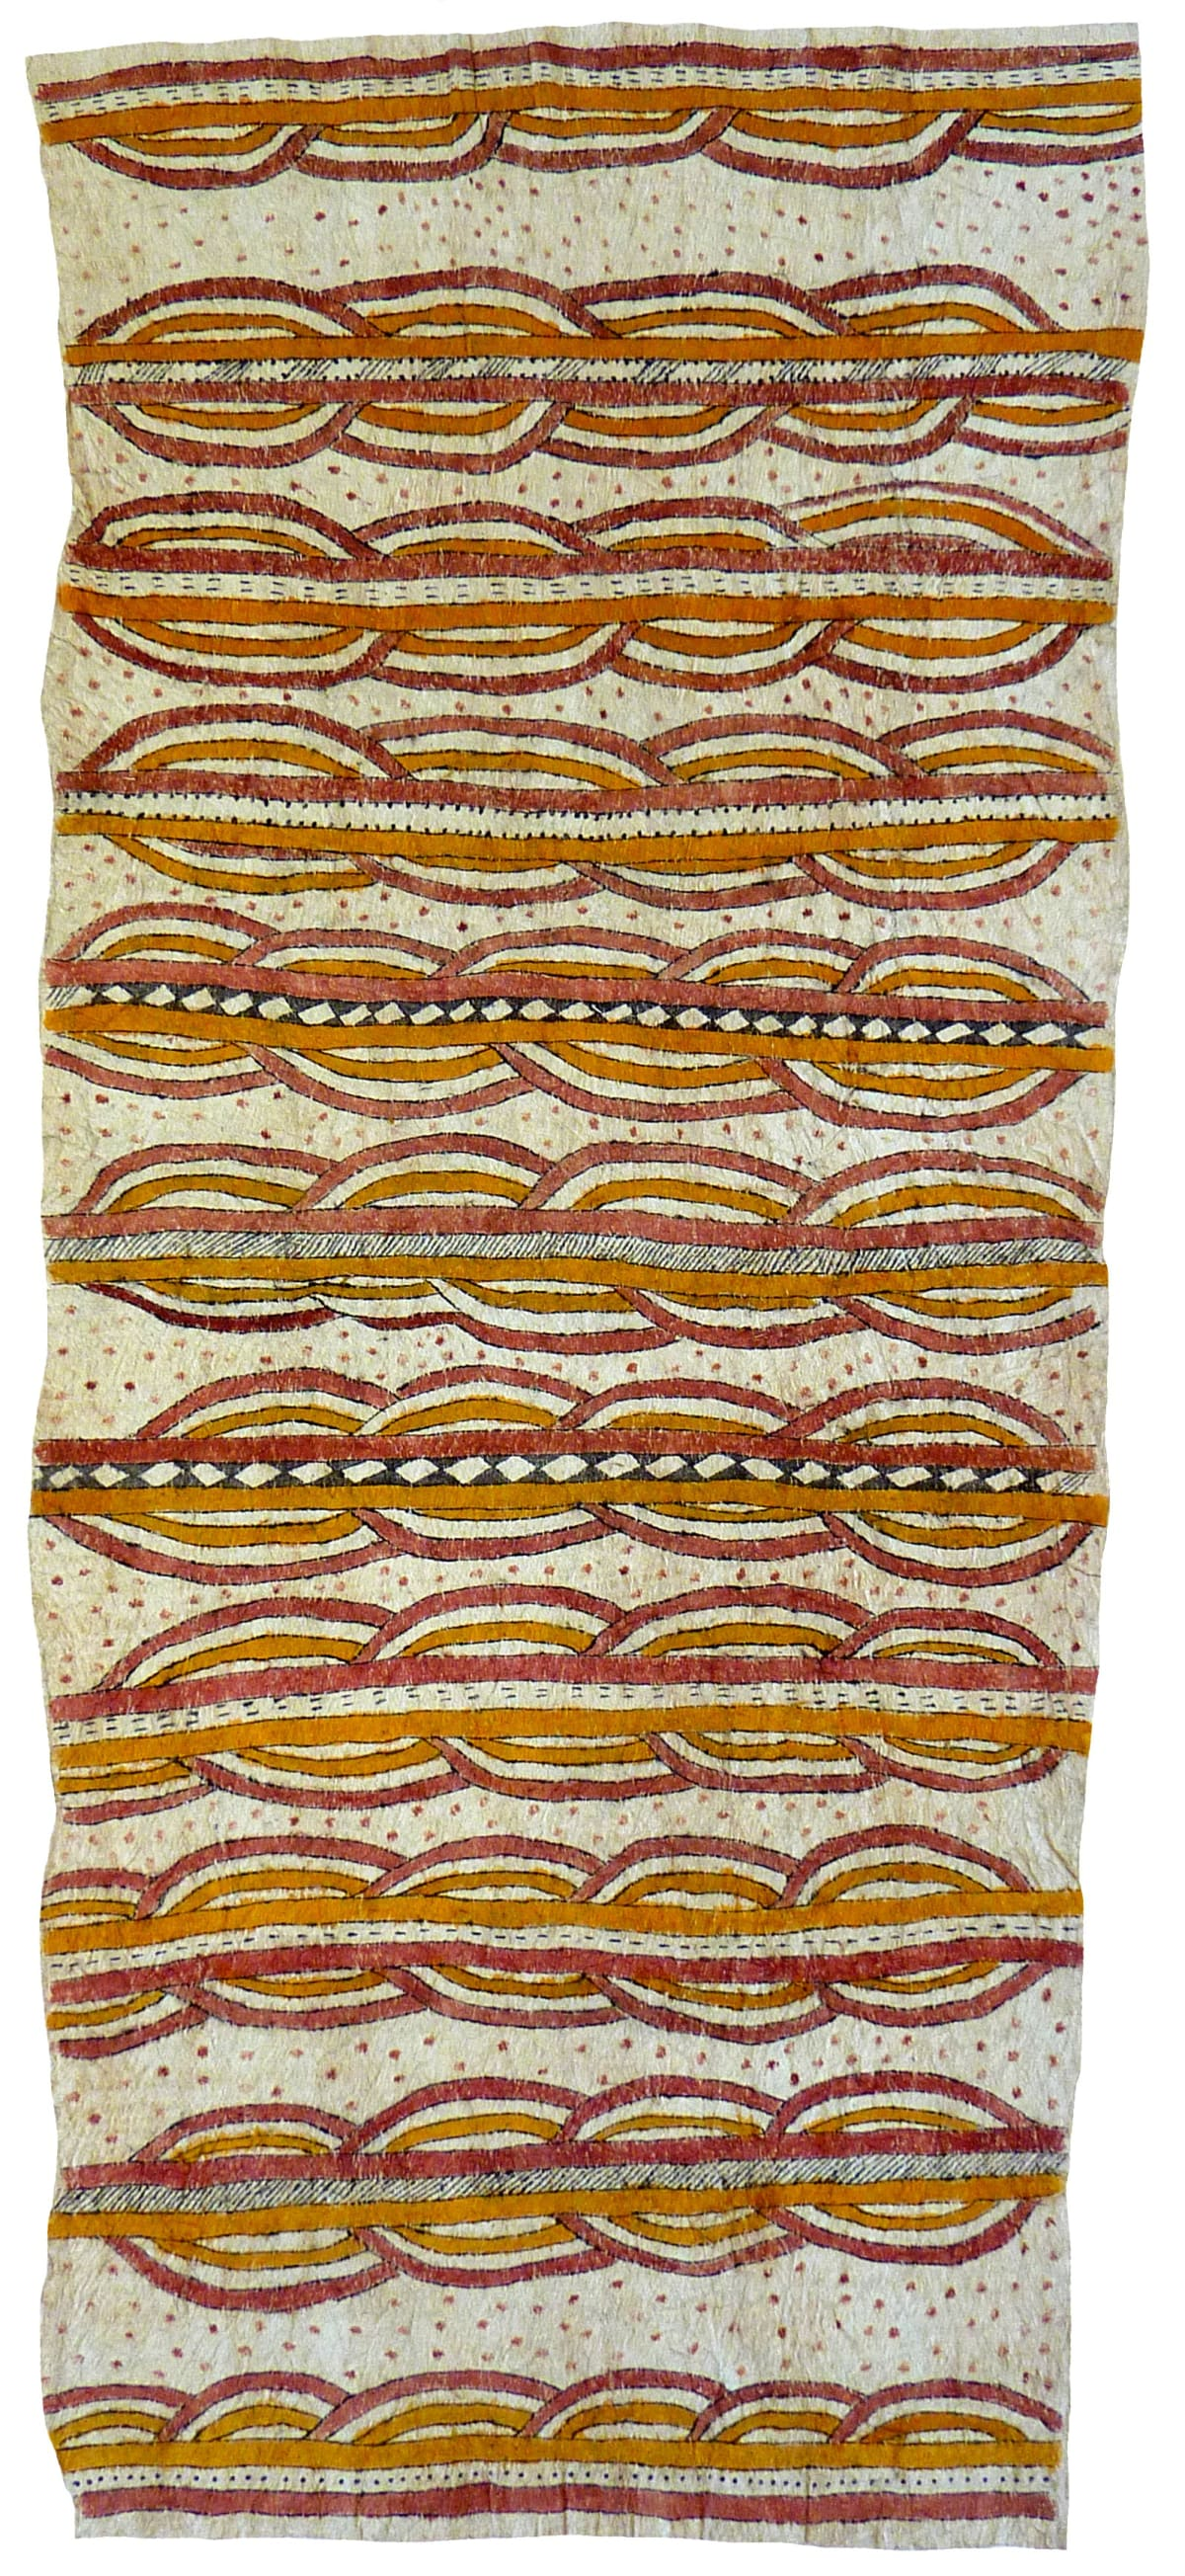 Celestine Warina Tagure' natural pigments on nioge (barkcloth) 140 x 63 cm